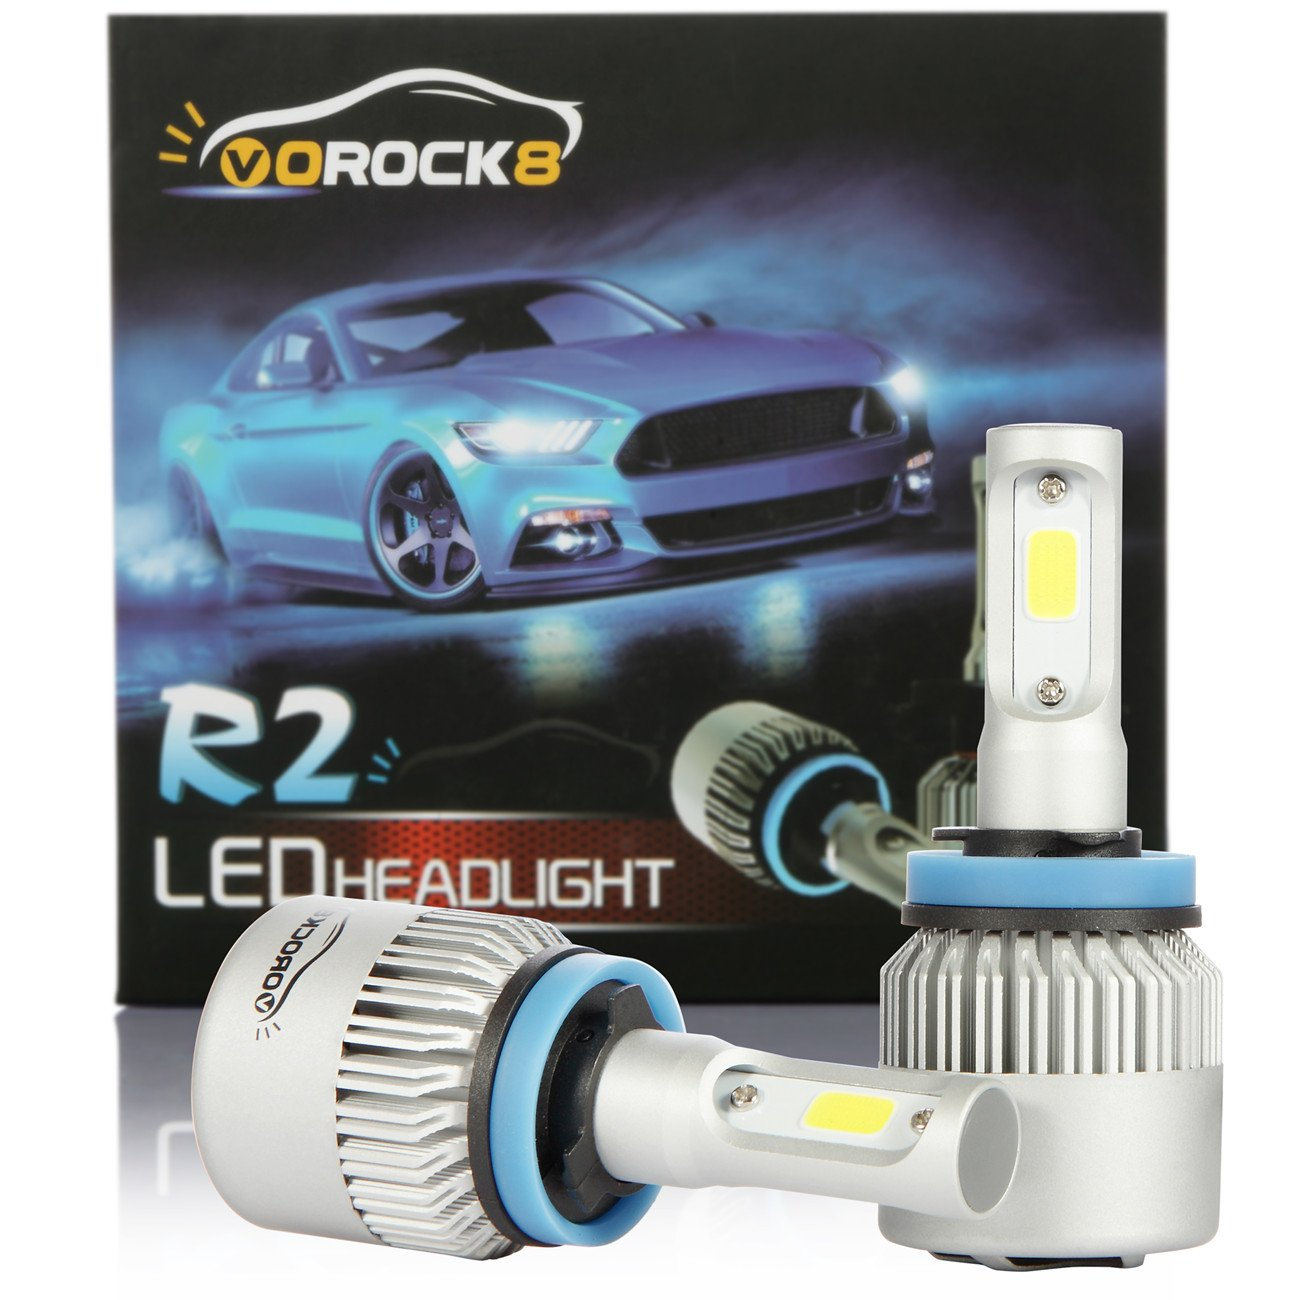 VoRock8 R2 COB H11 H8 H9 H16 8000 Lumens Led Headlight Conversion Kit, Low Beam Headlamp, Fog Driving Light, Halogen Head Light Replacement, 6500K Xenon White, 1 Pair by VoRock8